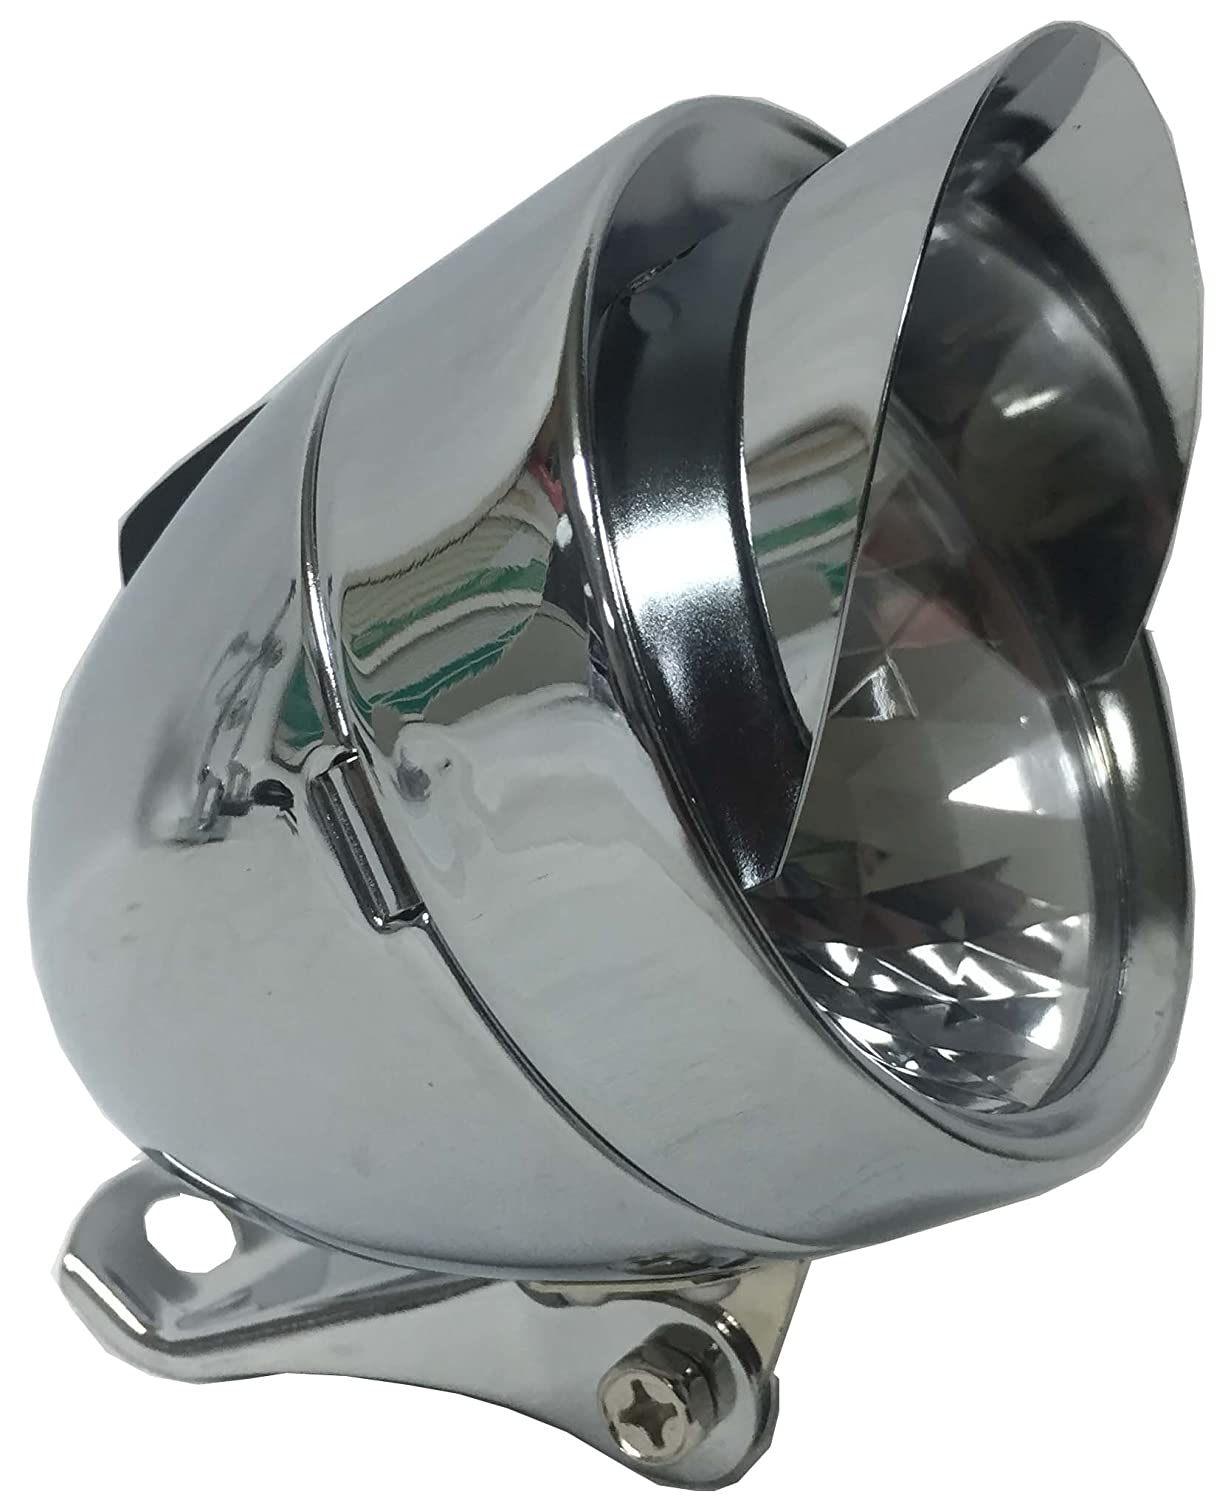 LED Bullet Head Light for Bicycles